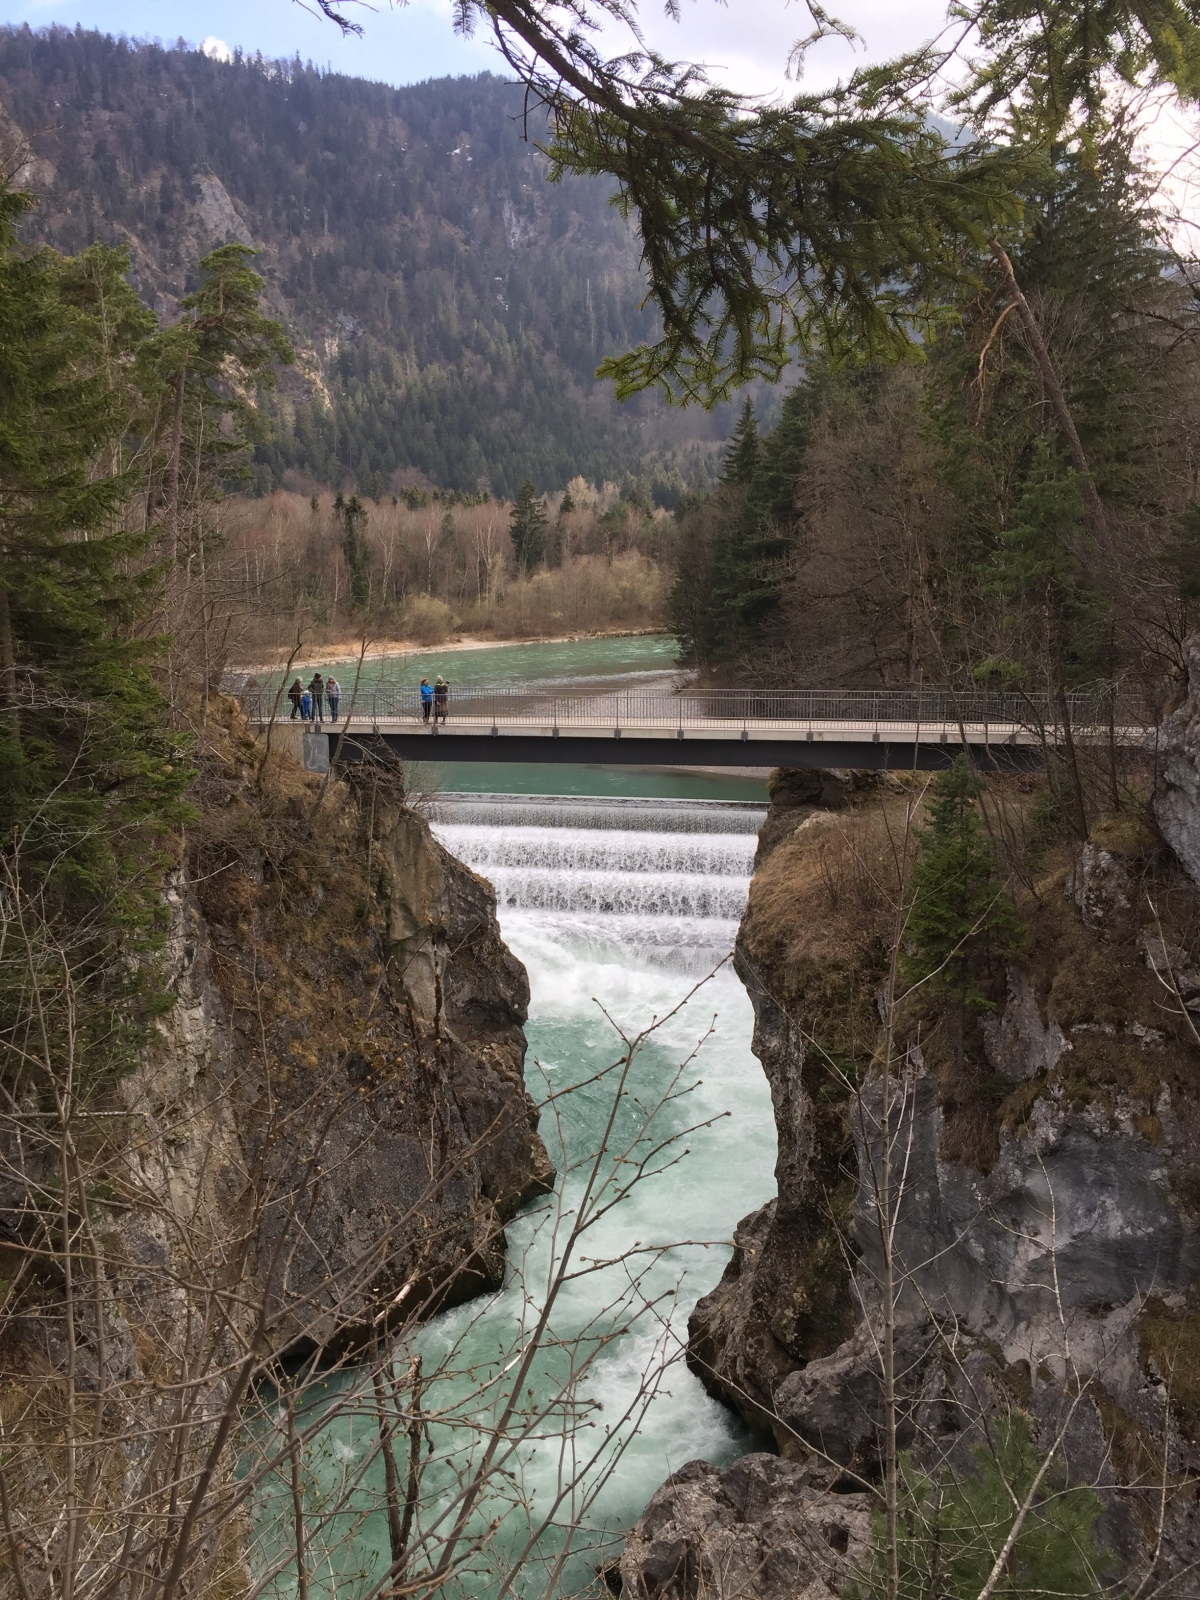 Munich to Füssen – 5 April 2019